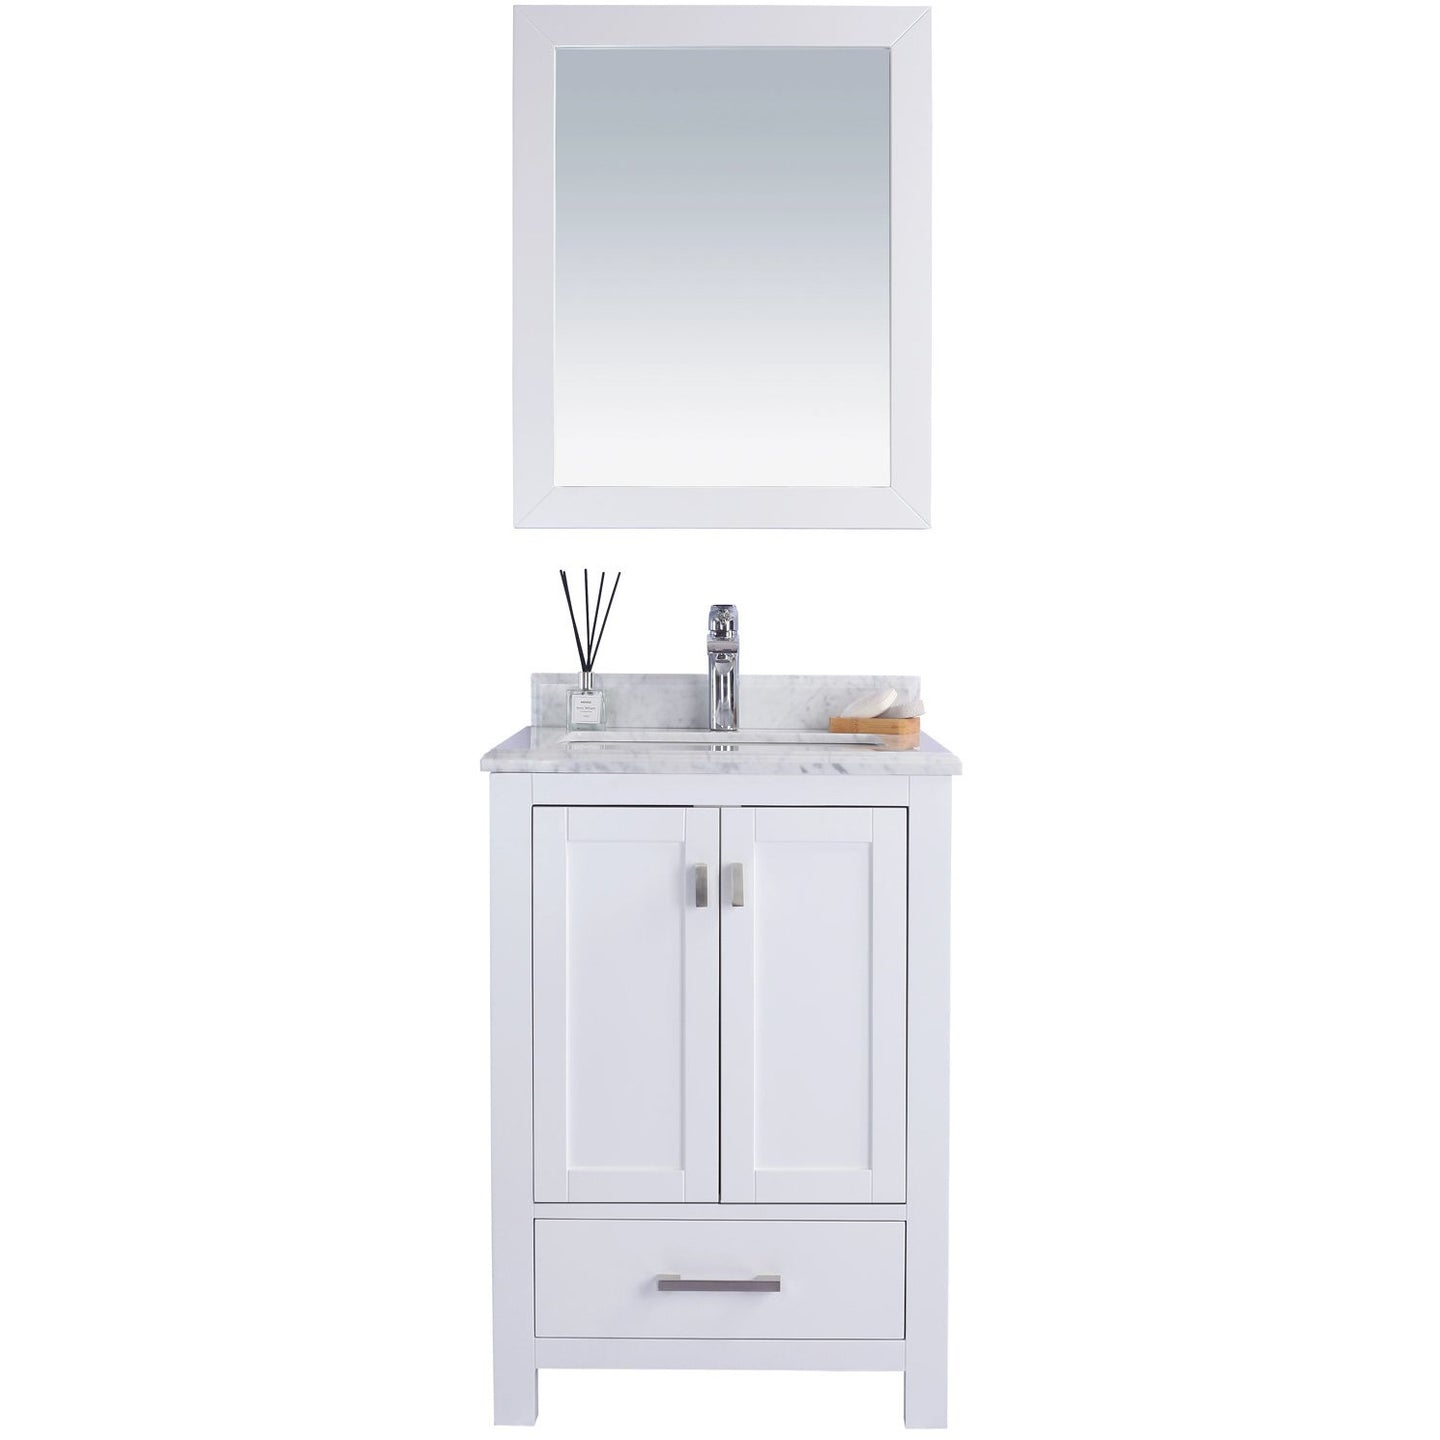 Wilson 24 - White Vanity and White Carrara Countertop by Laviva